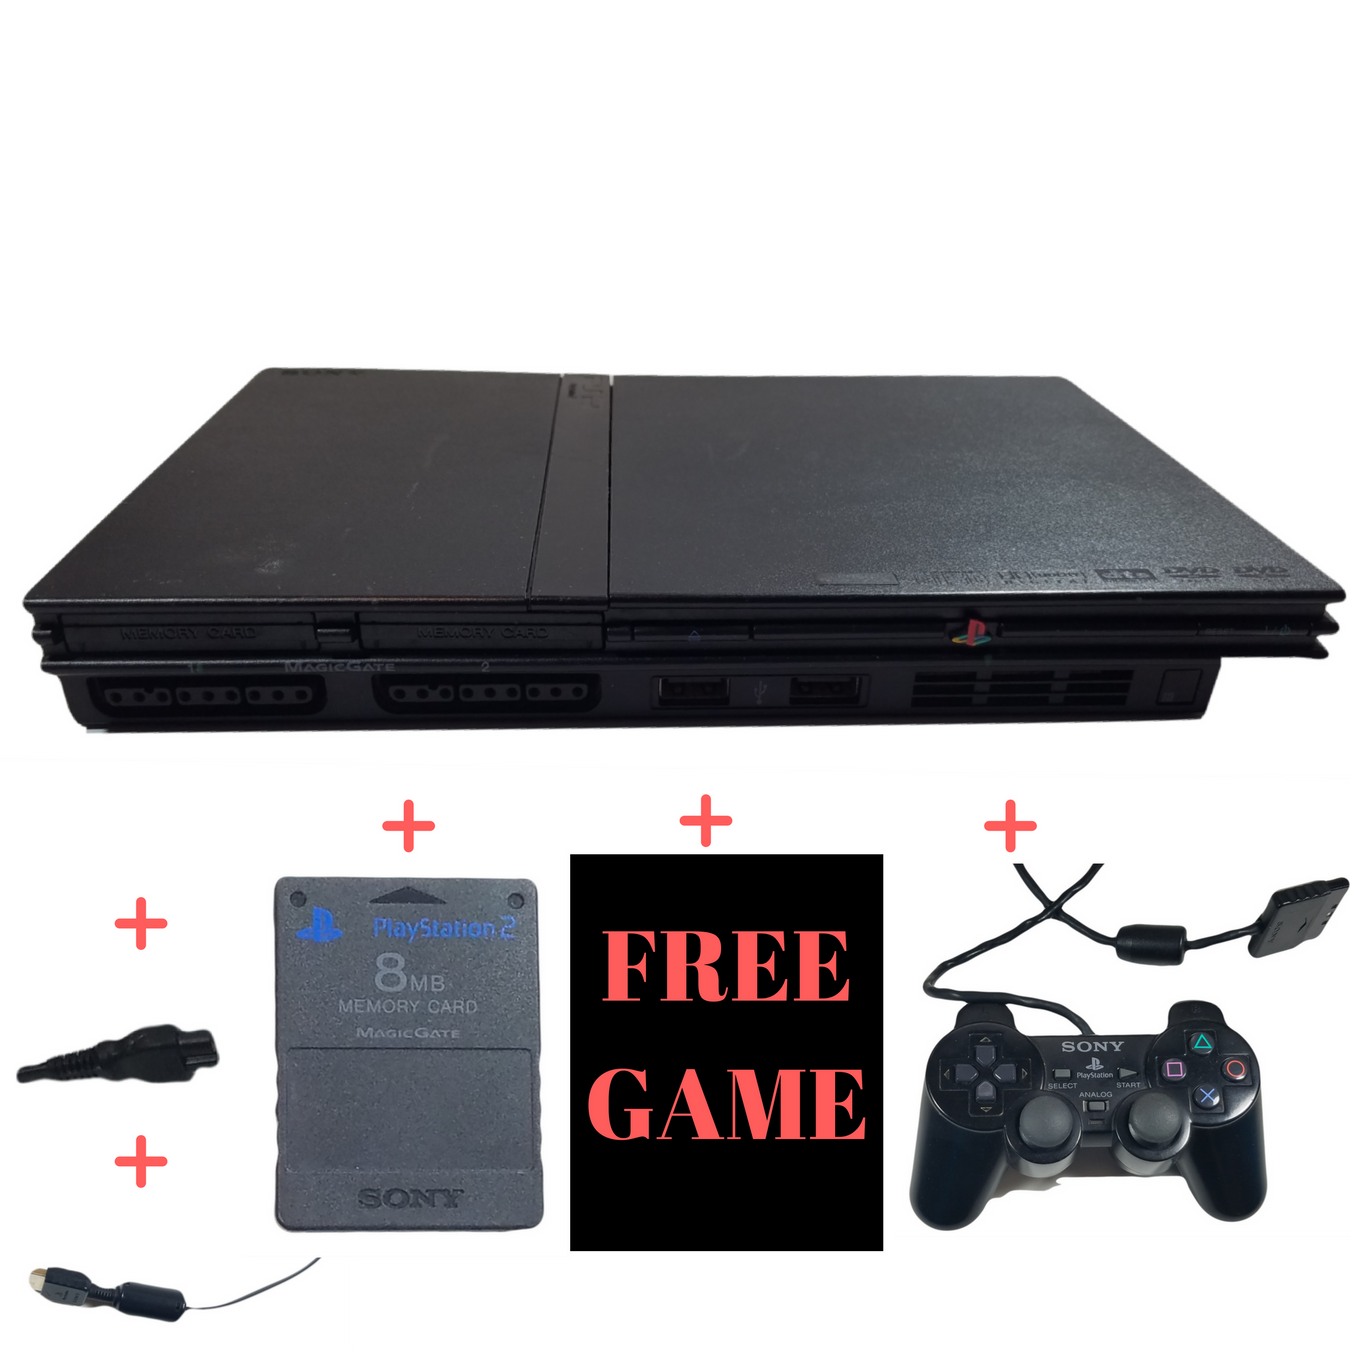 PlayStation 2 Consoles